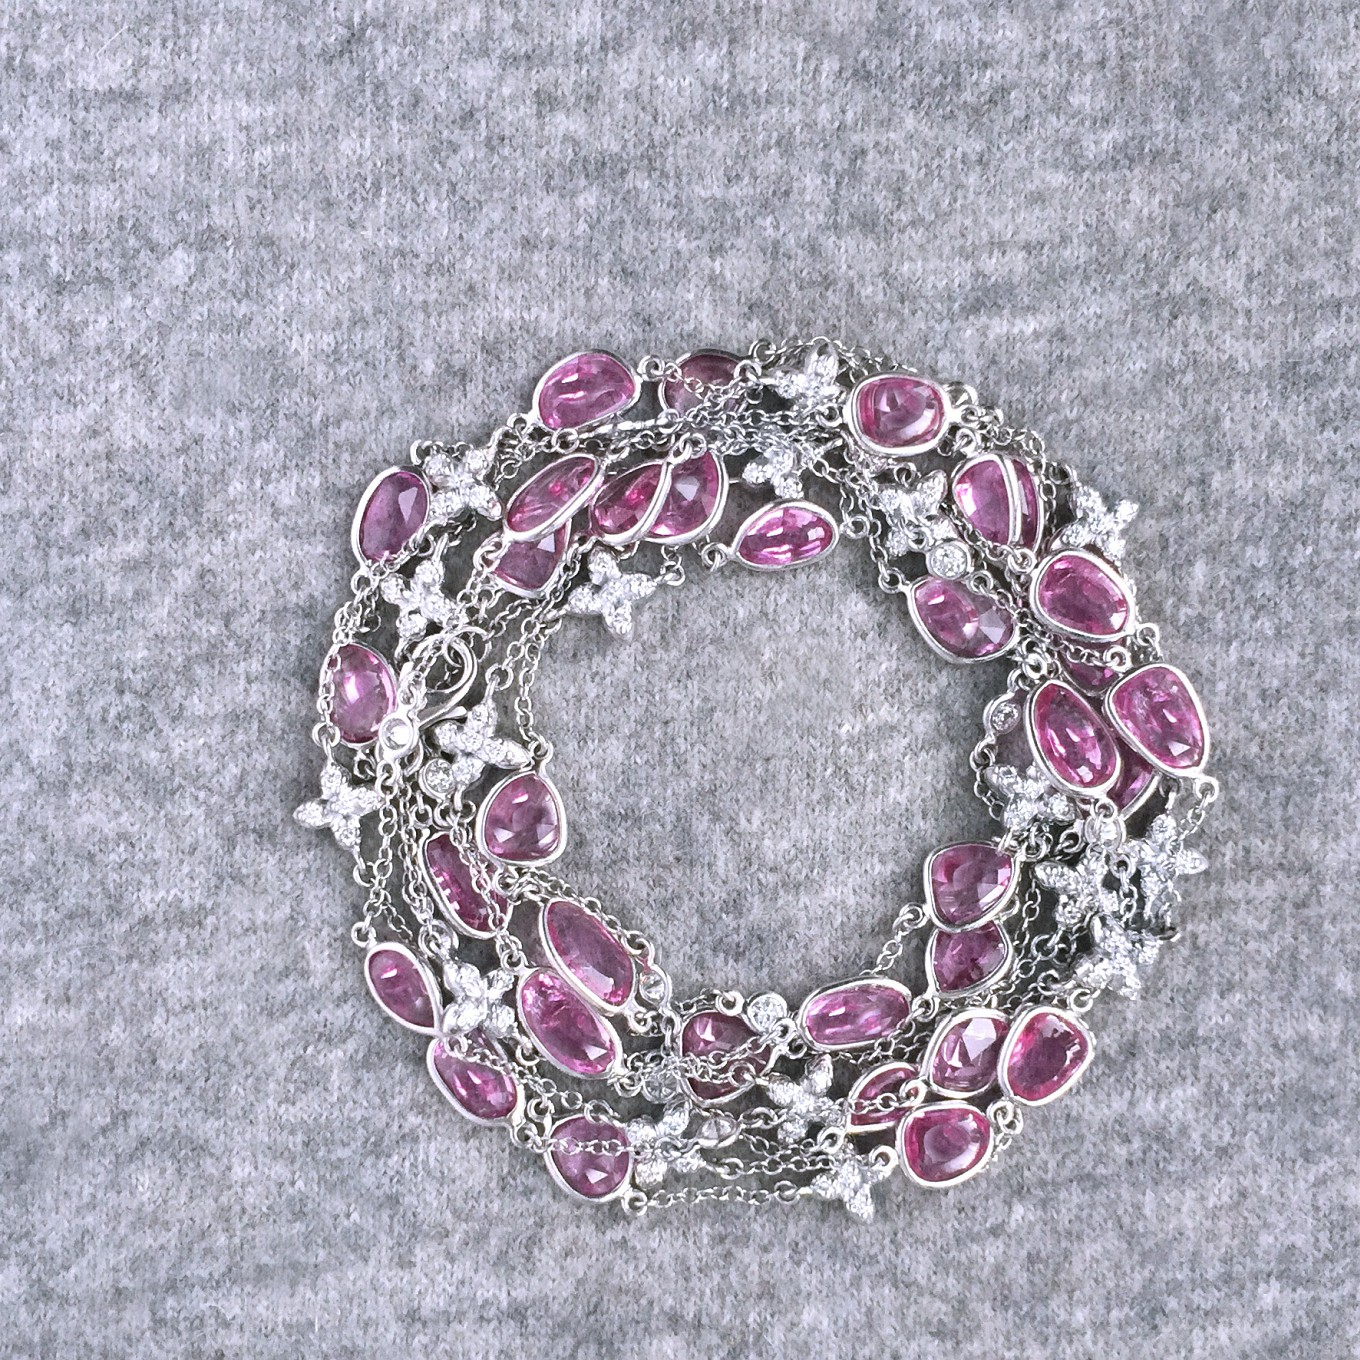 52 INCH ROSECUT PINK SAPPHIRE & DIAMOND SEVILLA MOTIF NECKLACE IN WHITE GOLD